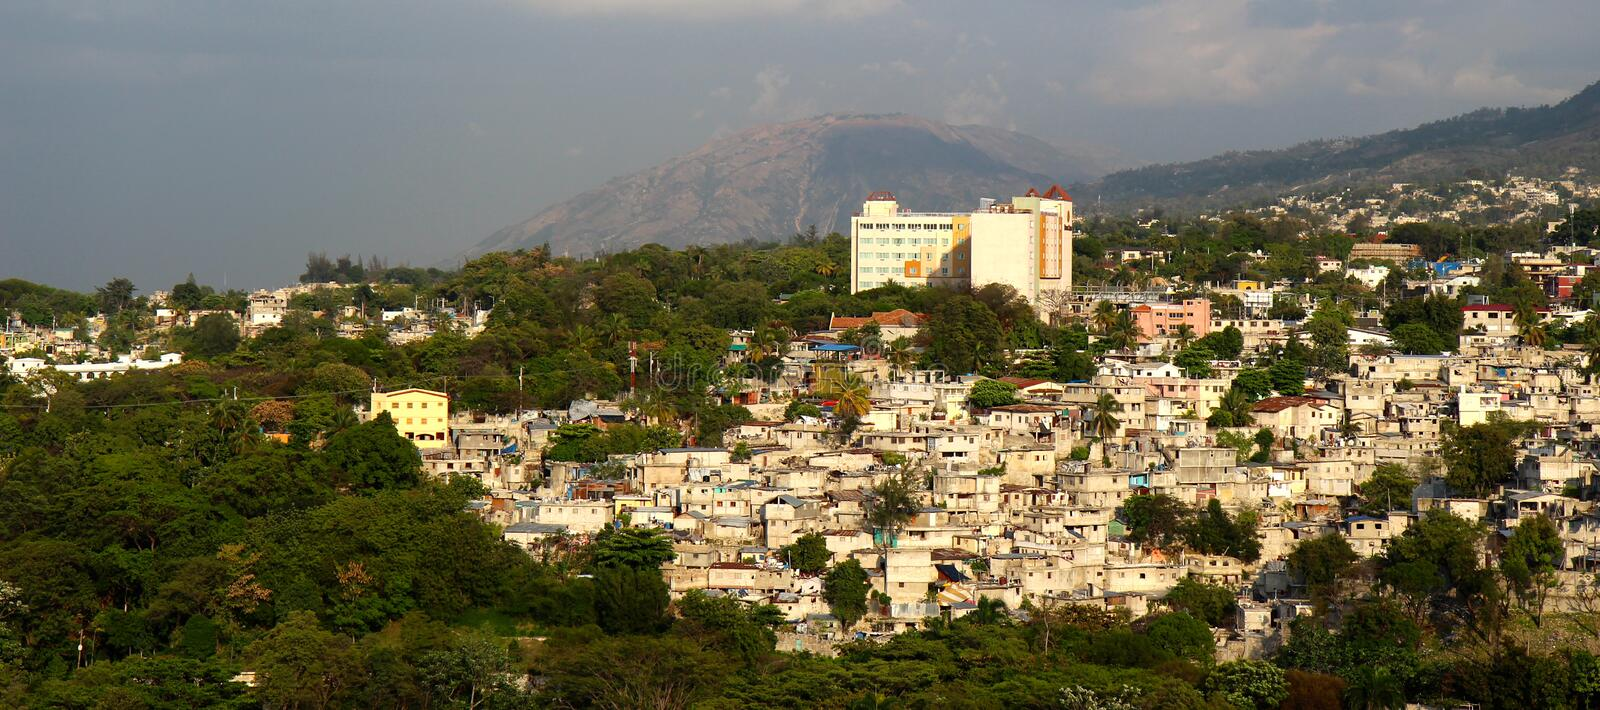 Port-au-Prince houses. Little houses in the mountain in Port-au-Prince, Haiti stock photography